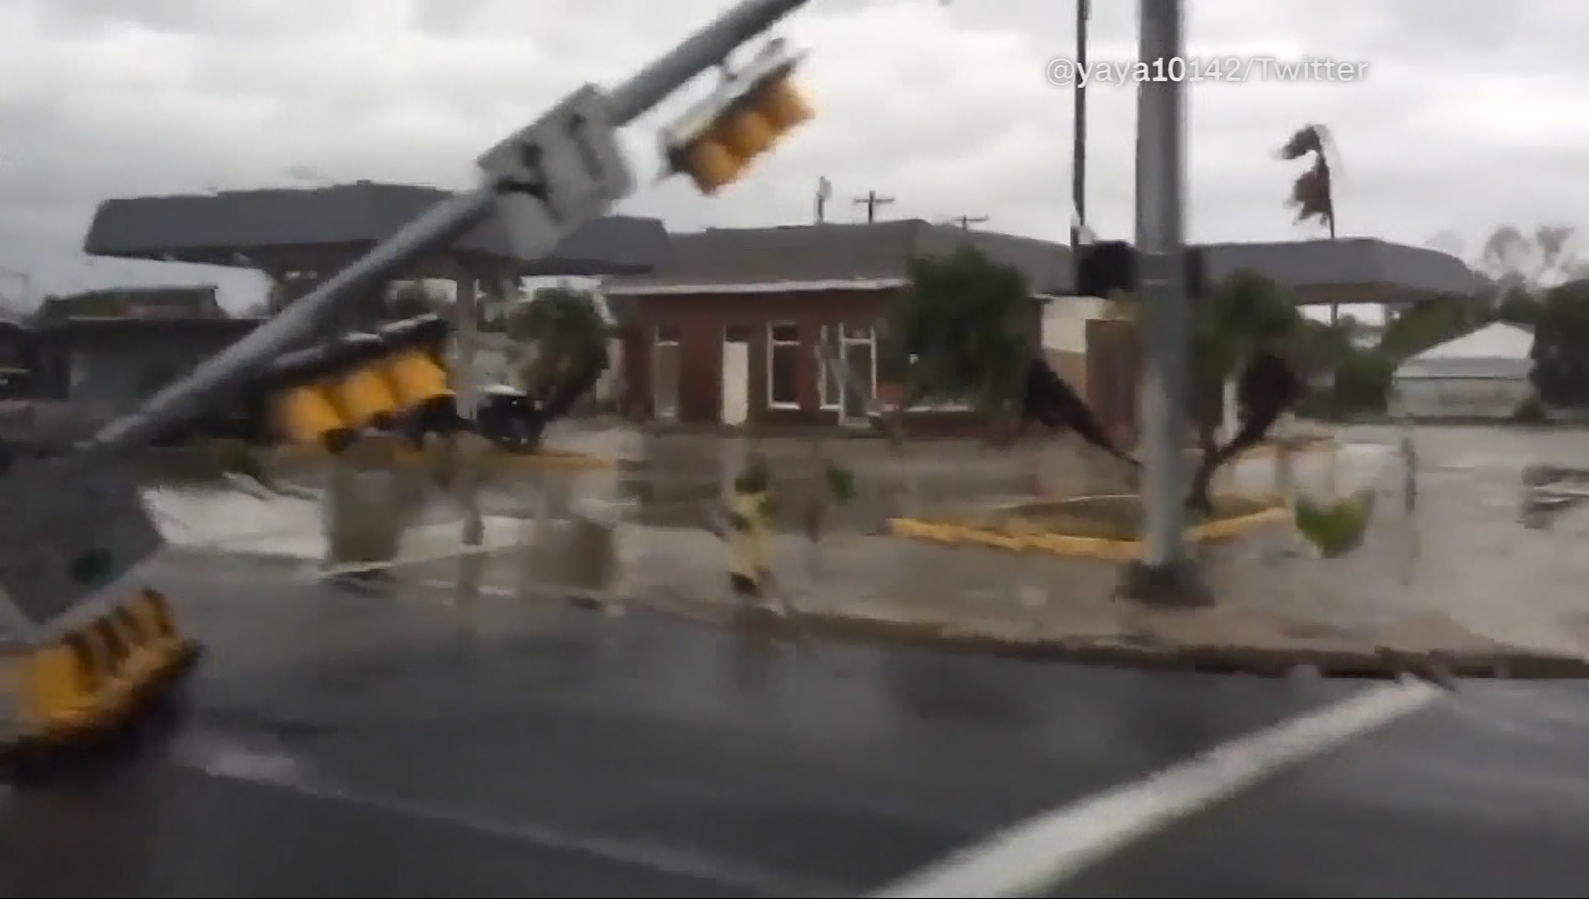 Trees and stop lights down in Corpus Christi (@yaya10142/Twitter/CNN)